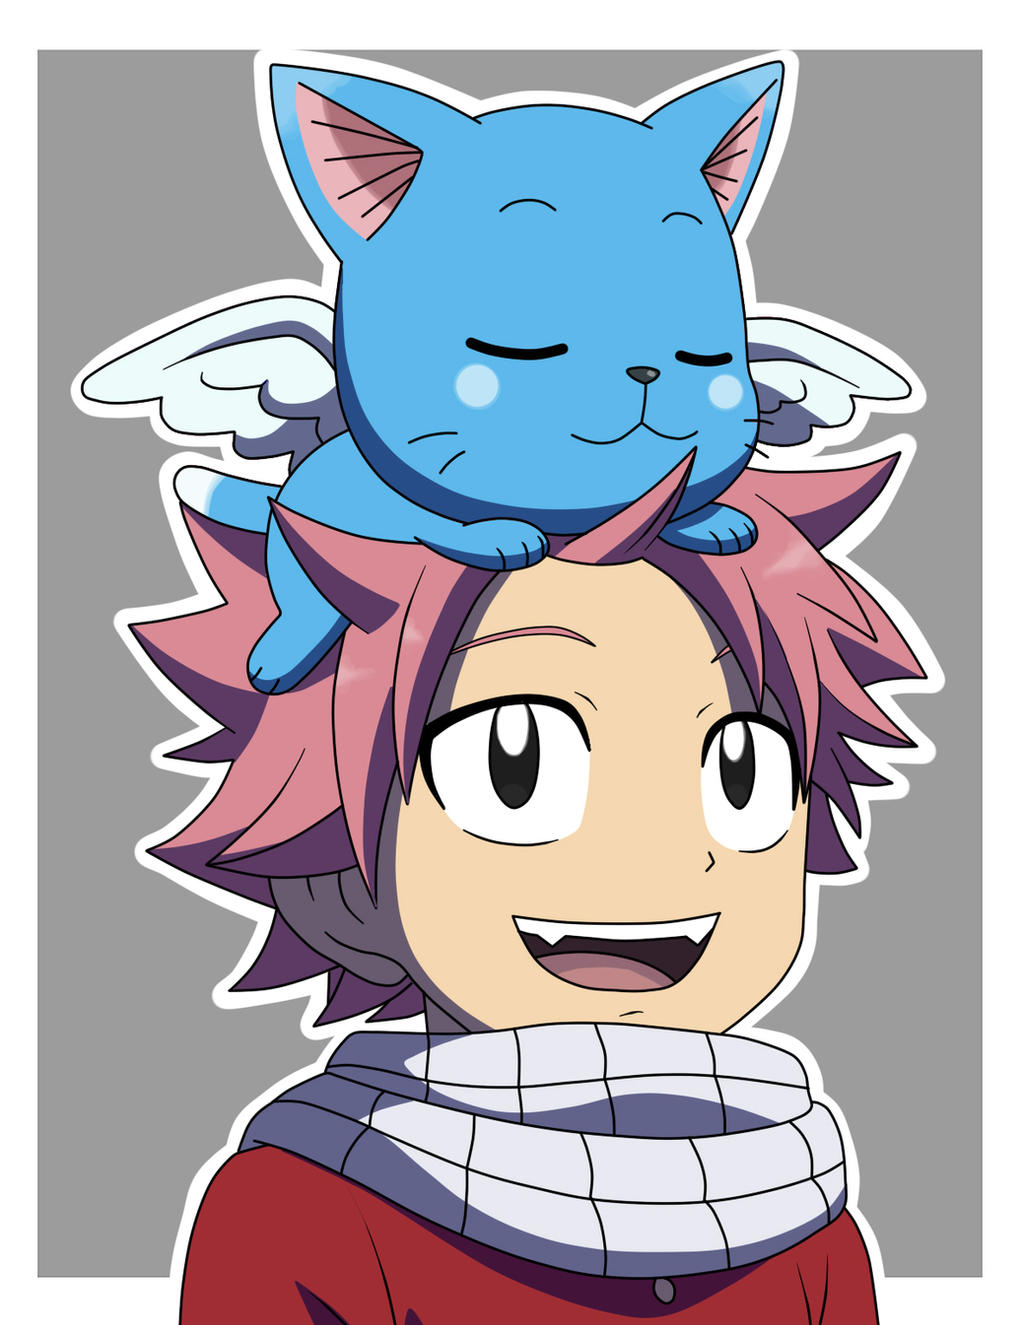 Natsu and Happy Fairy Tail by fer-gon on DeviantArt